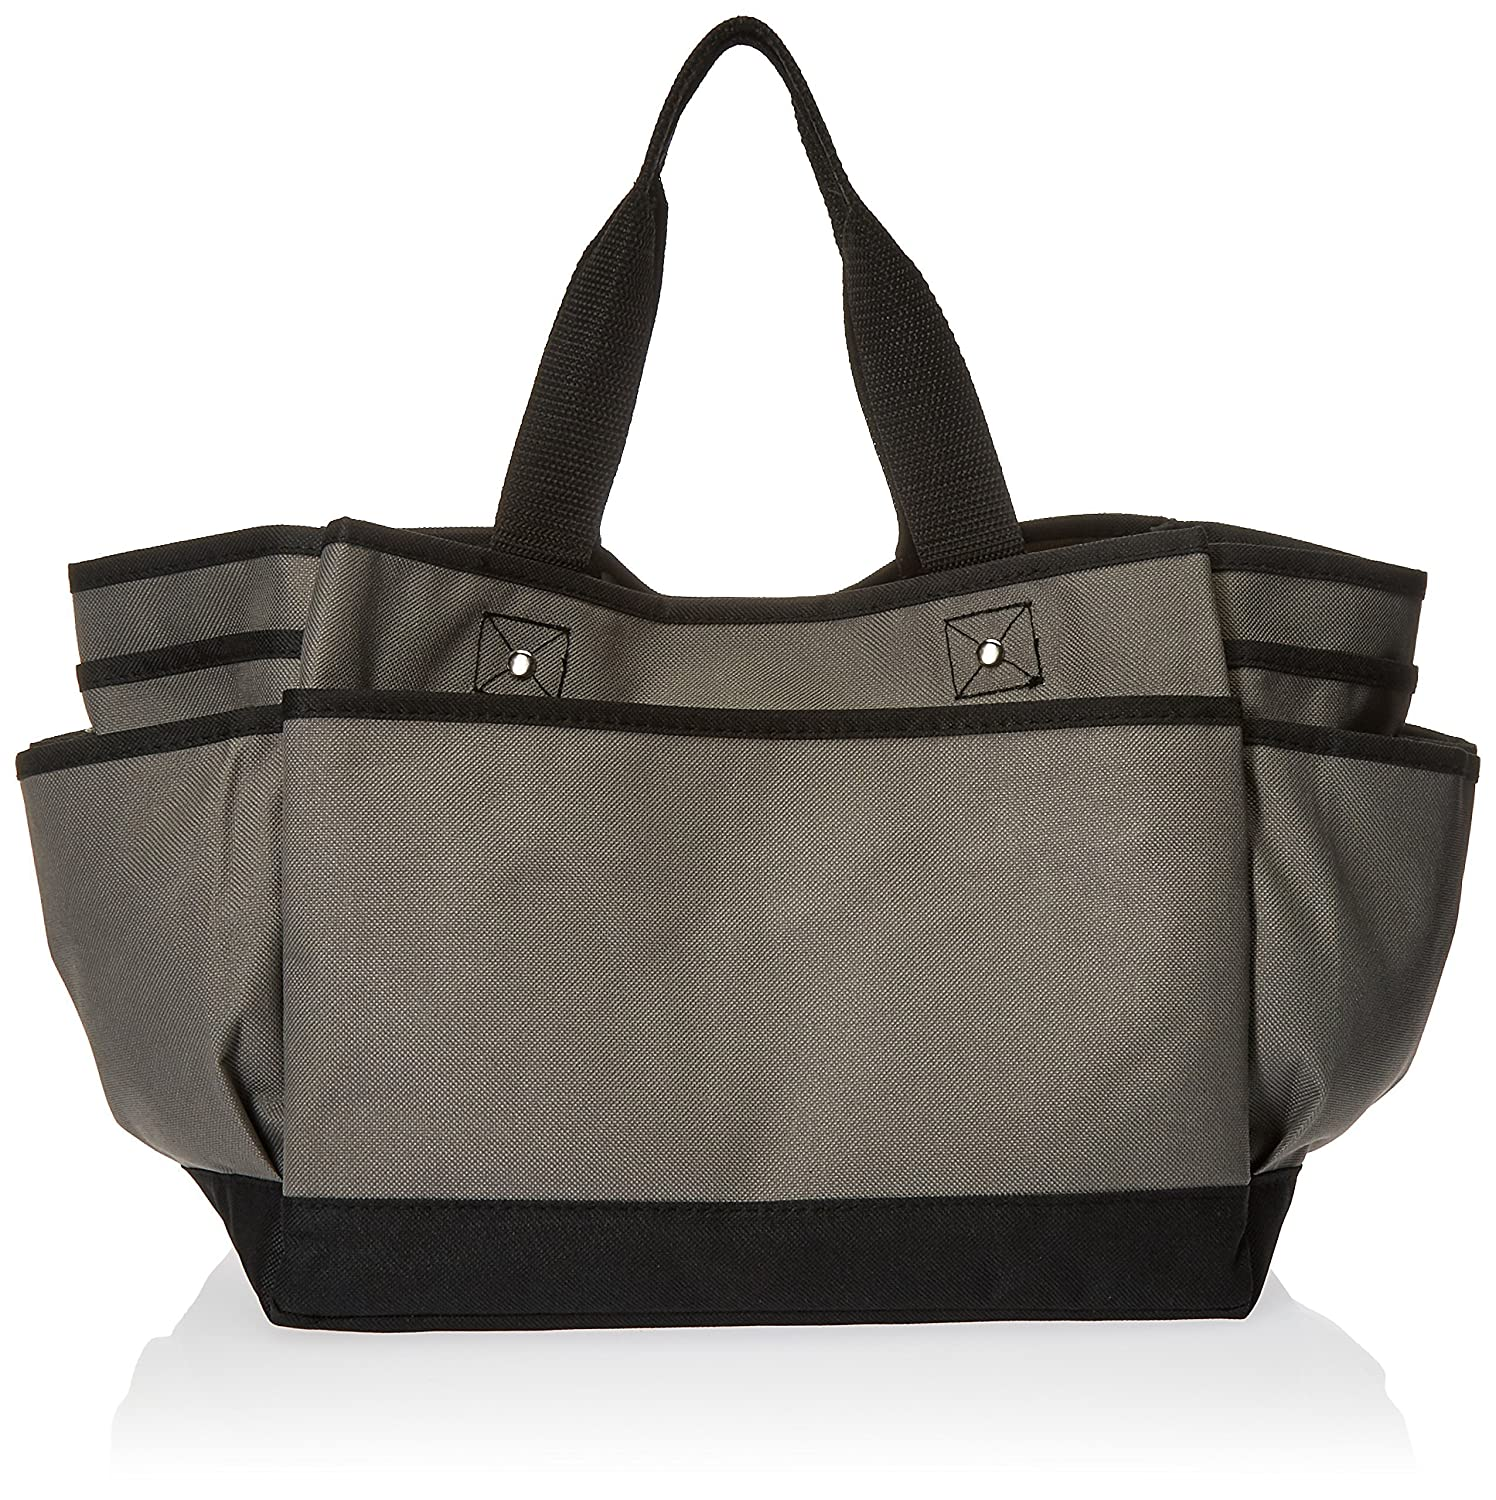 ST4L266221330 Deluxe Professional Tote Bag, Grey SmartTravel4Less